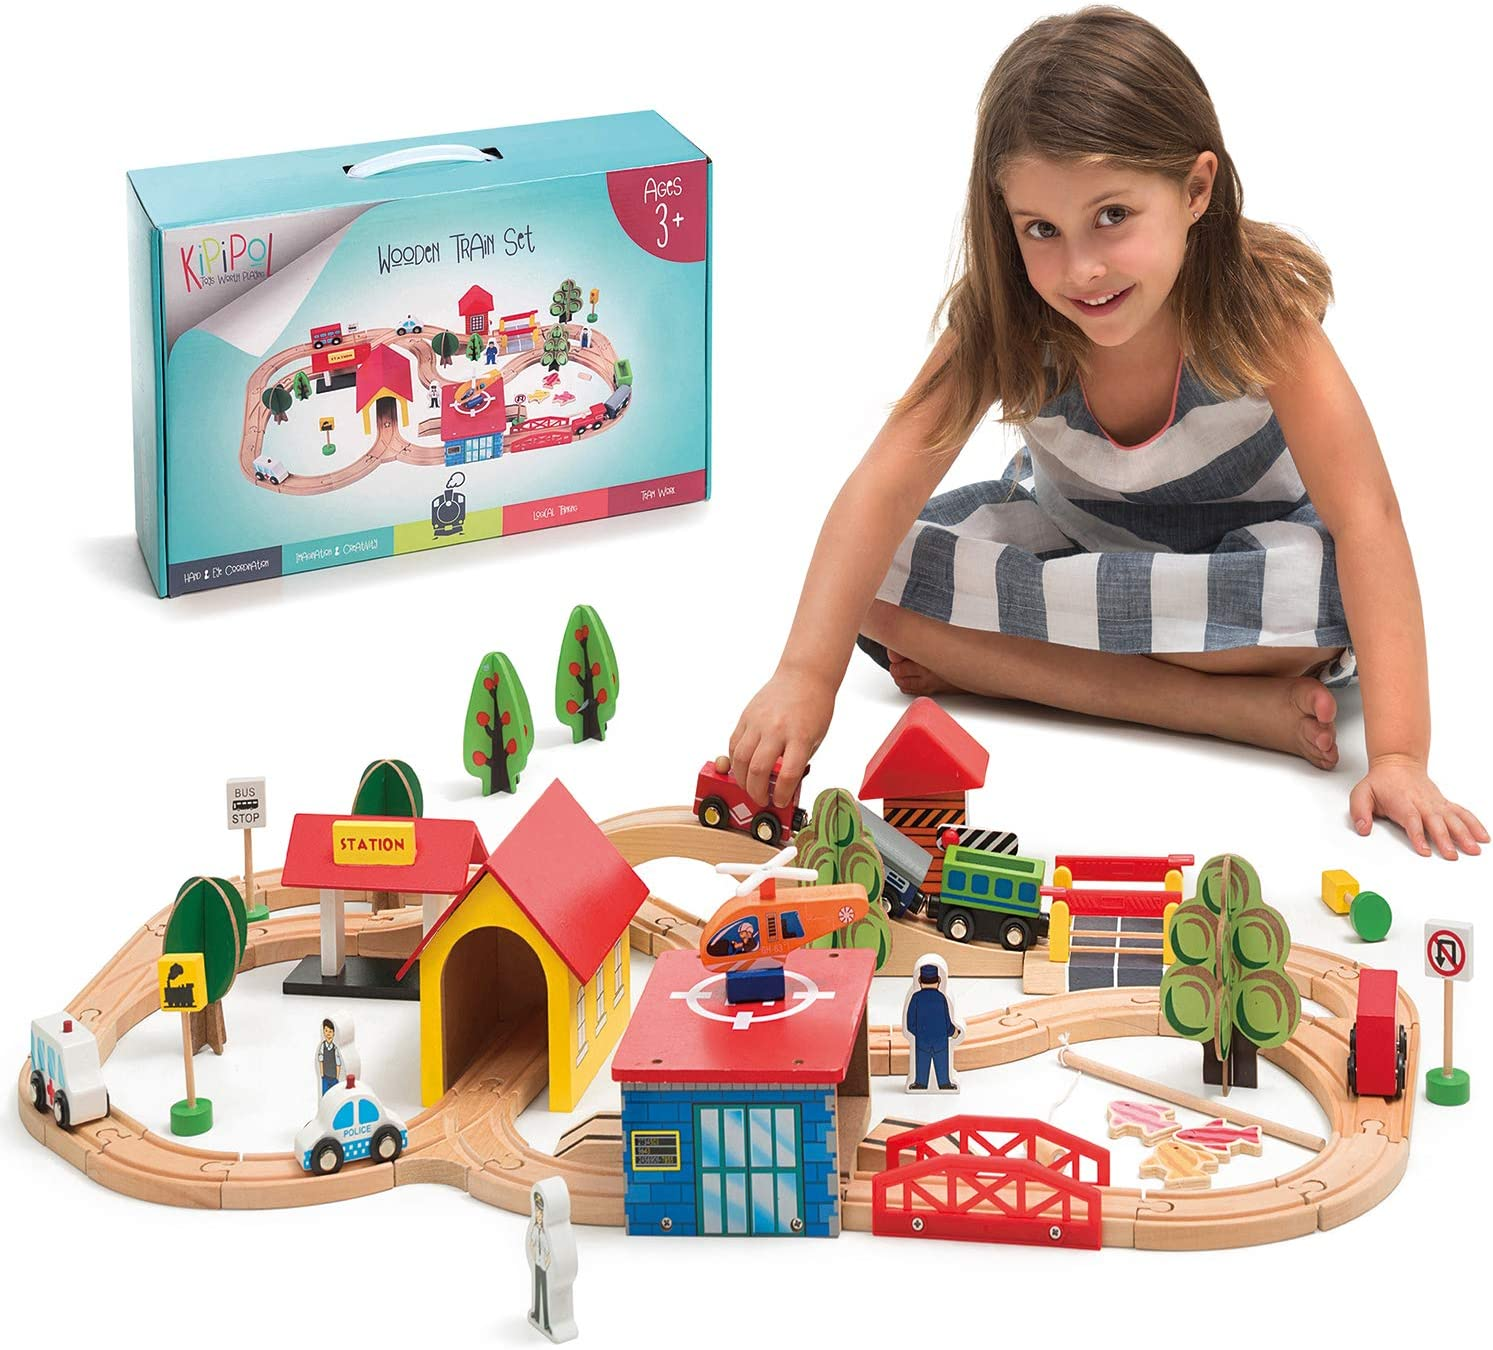 Kipipol Wooden Train Tracks Set for Kids, Toddler Boys and Girls 3, 4, 5 Years Old and Up - 69 Pieces – Premium Wood Construction Toys - Fits Thomas, Brio, IKEA, Imaginarium, Melissa and Doug